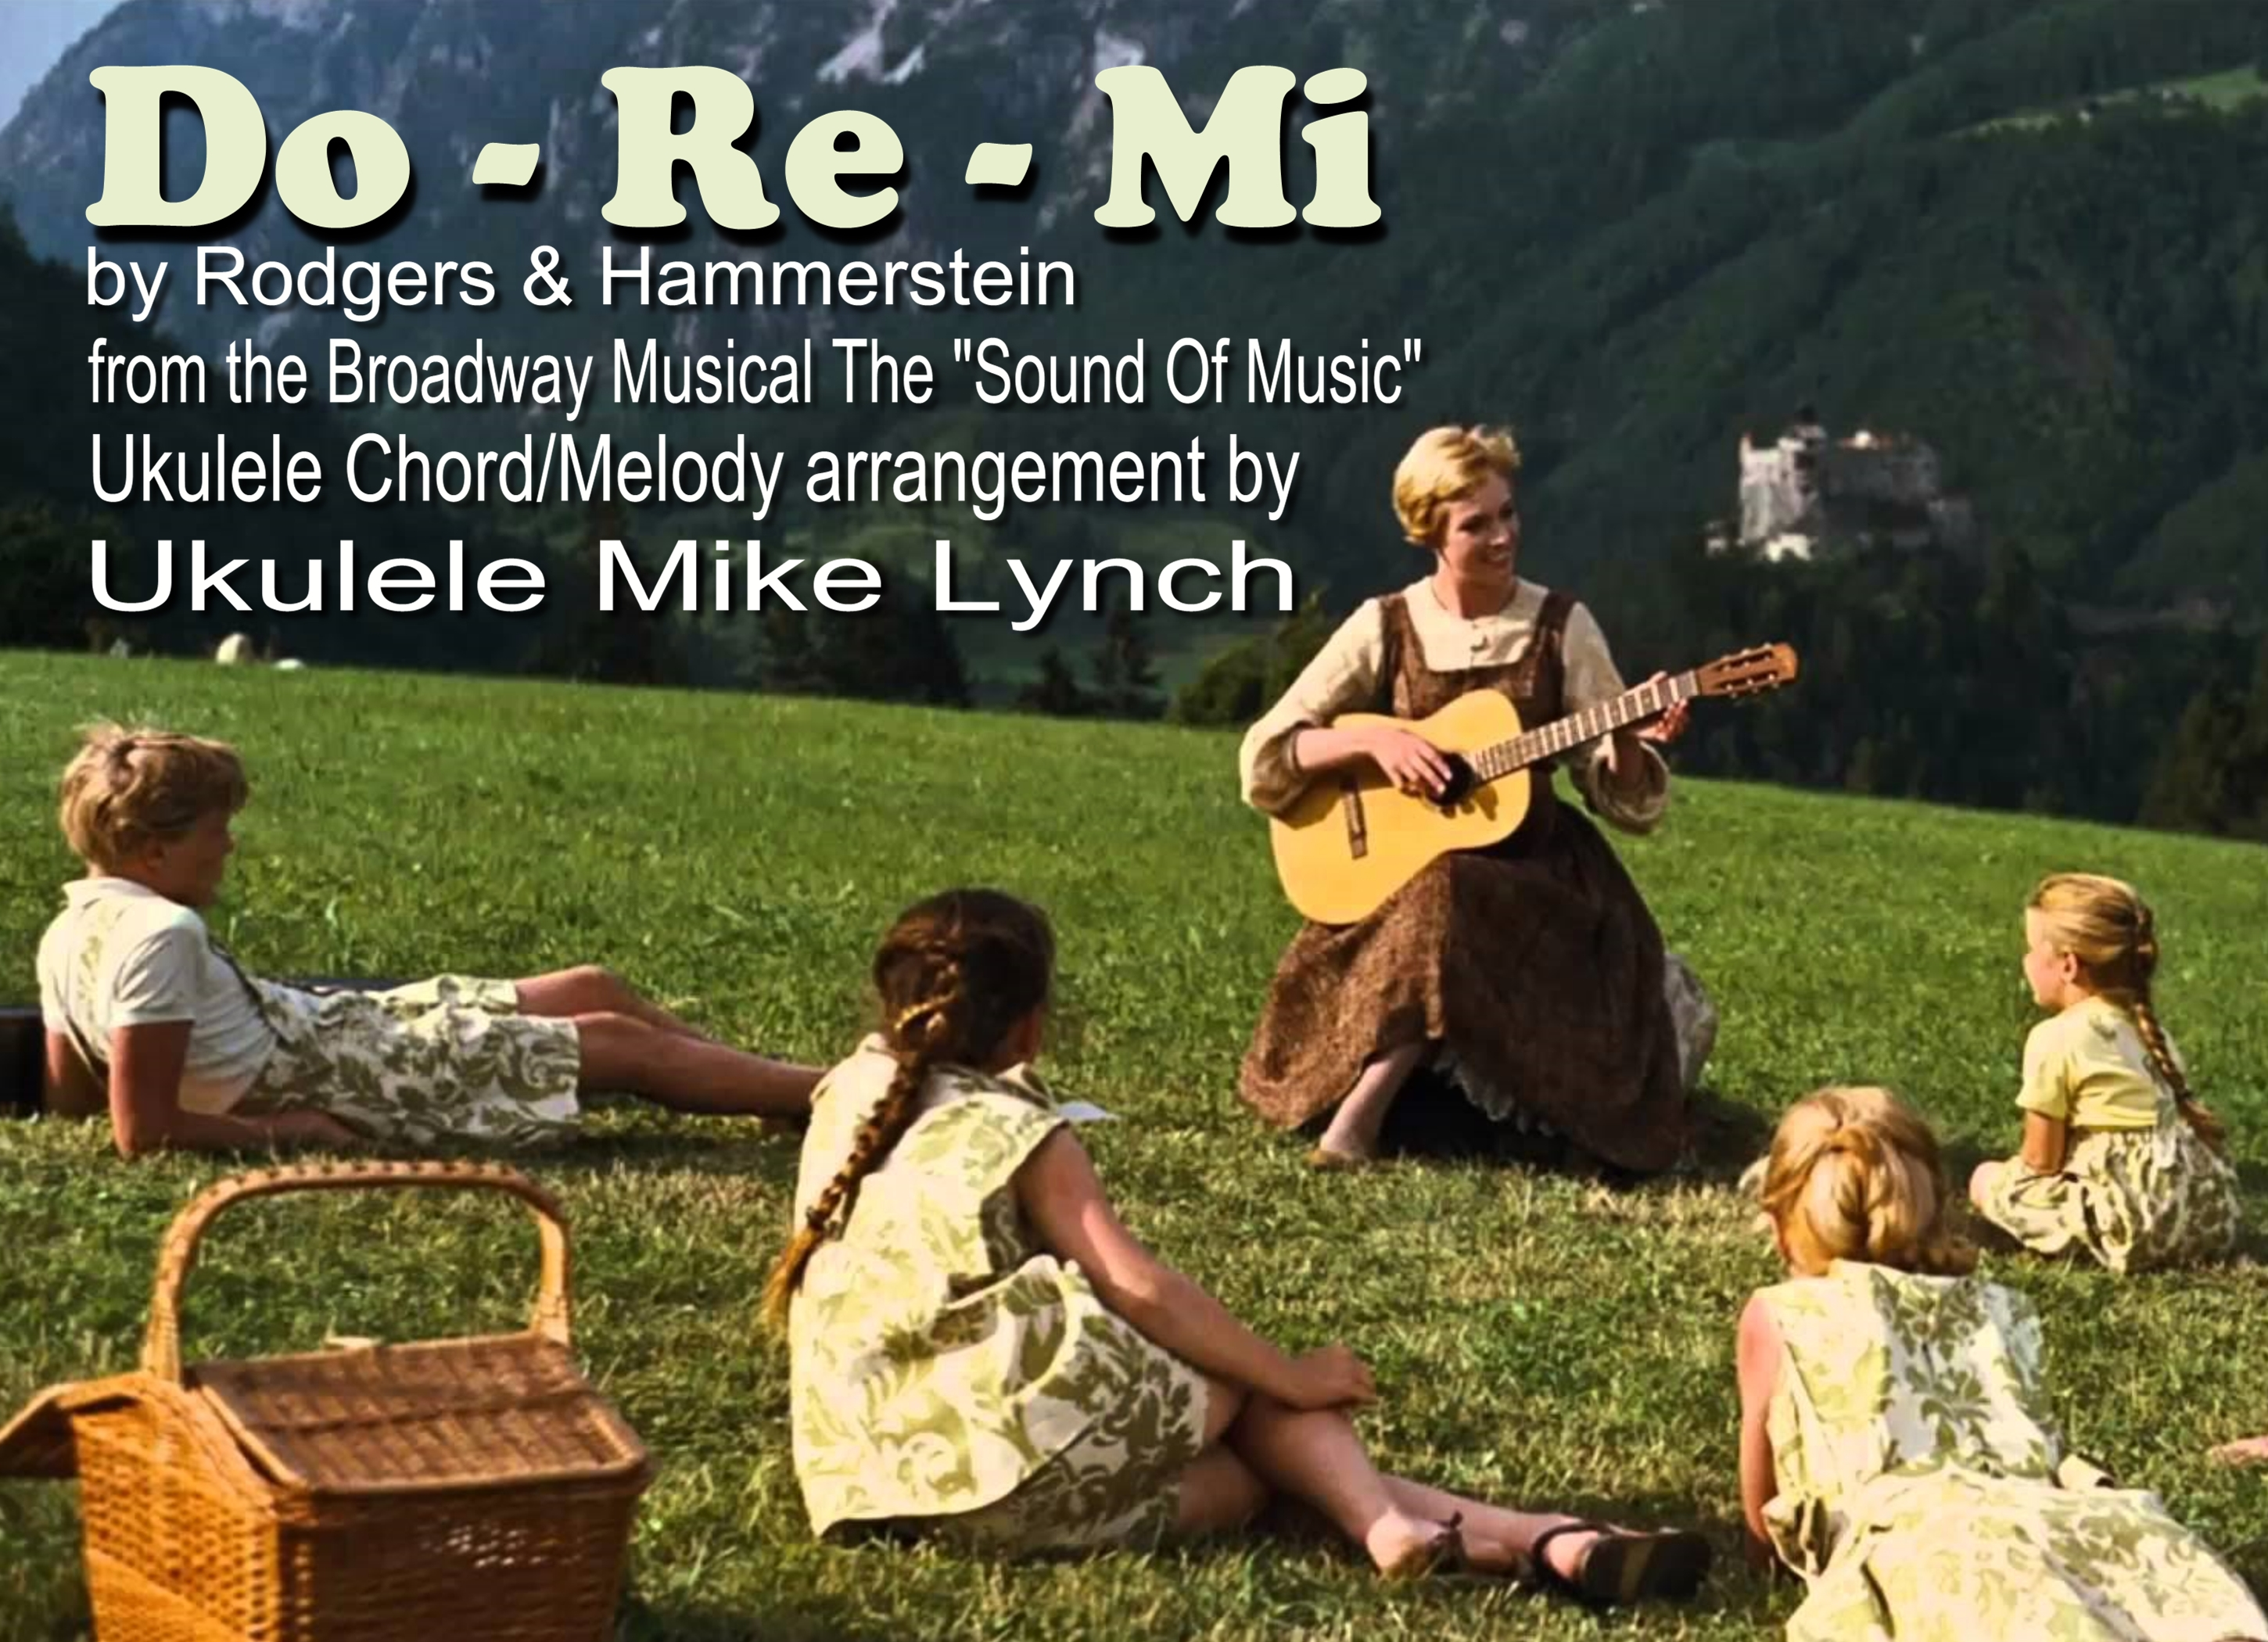 Do re mi by rodgers hammerstein from the broadway from the broadway musical the sound of music ord melody arrangement by ukulele mike lynch hexwebz Images